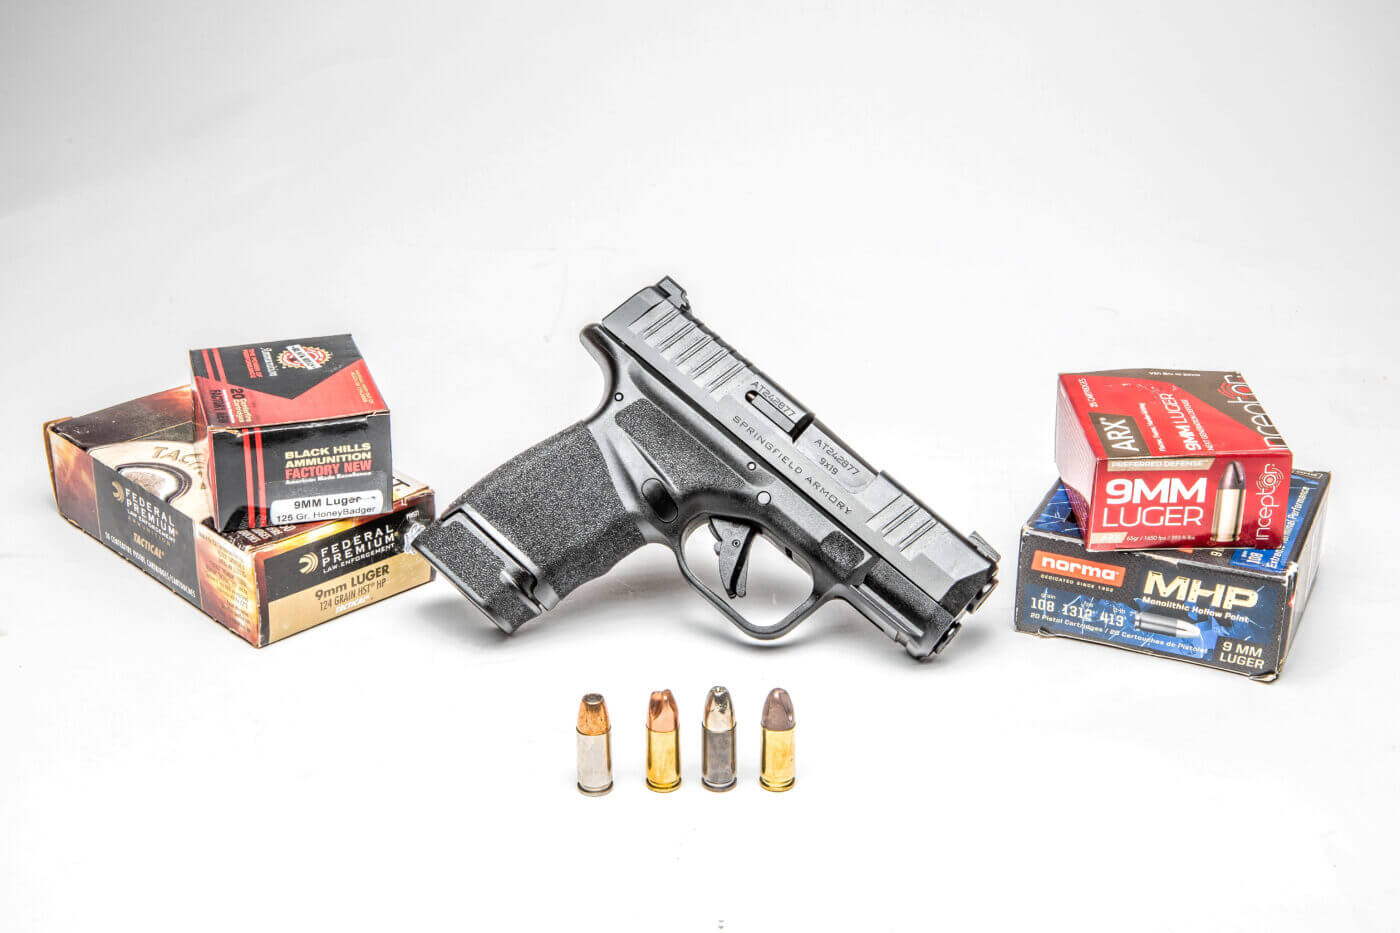 Bullet anatomy with four loads